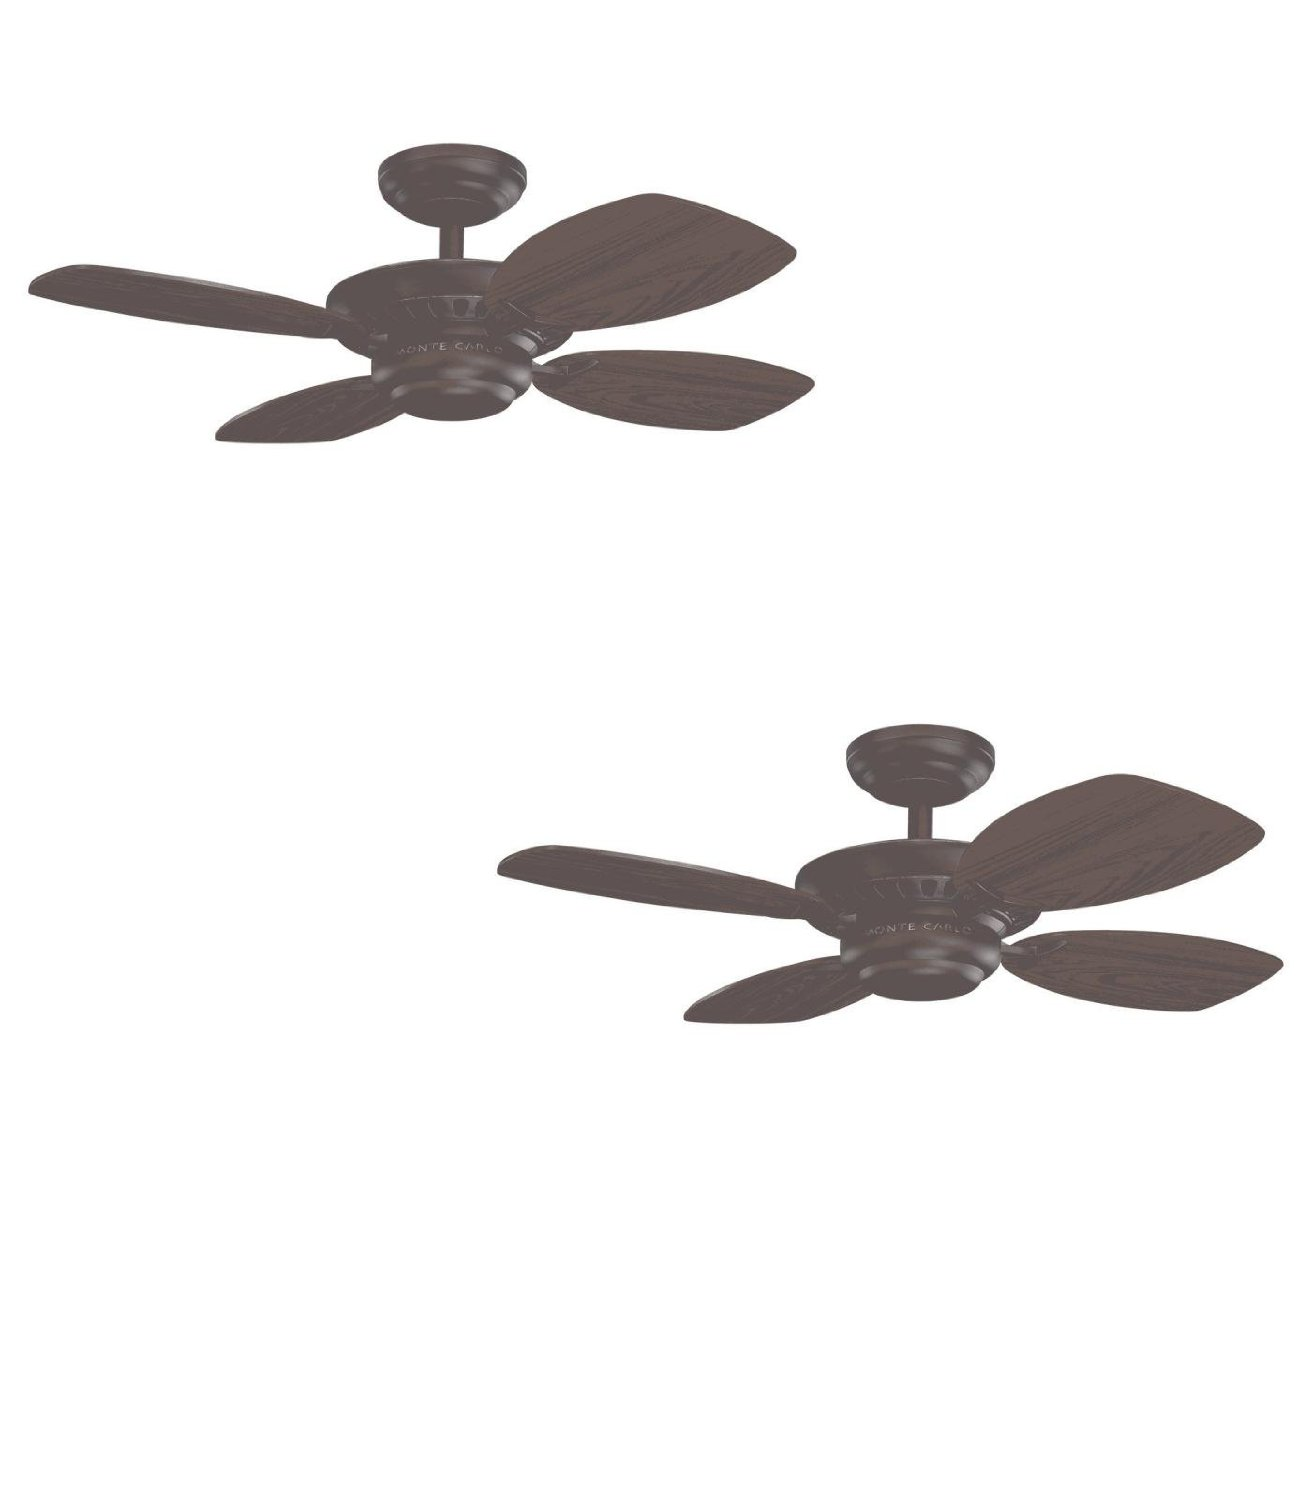 Set of Two - No. 4CO28RB - Colony II 28-in Roman Bronze Downrod or Close Mount Indoor Ceiling Fan (4-Blade) - Monte Carlo Fan Company